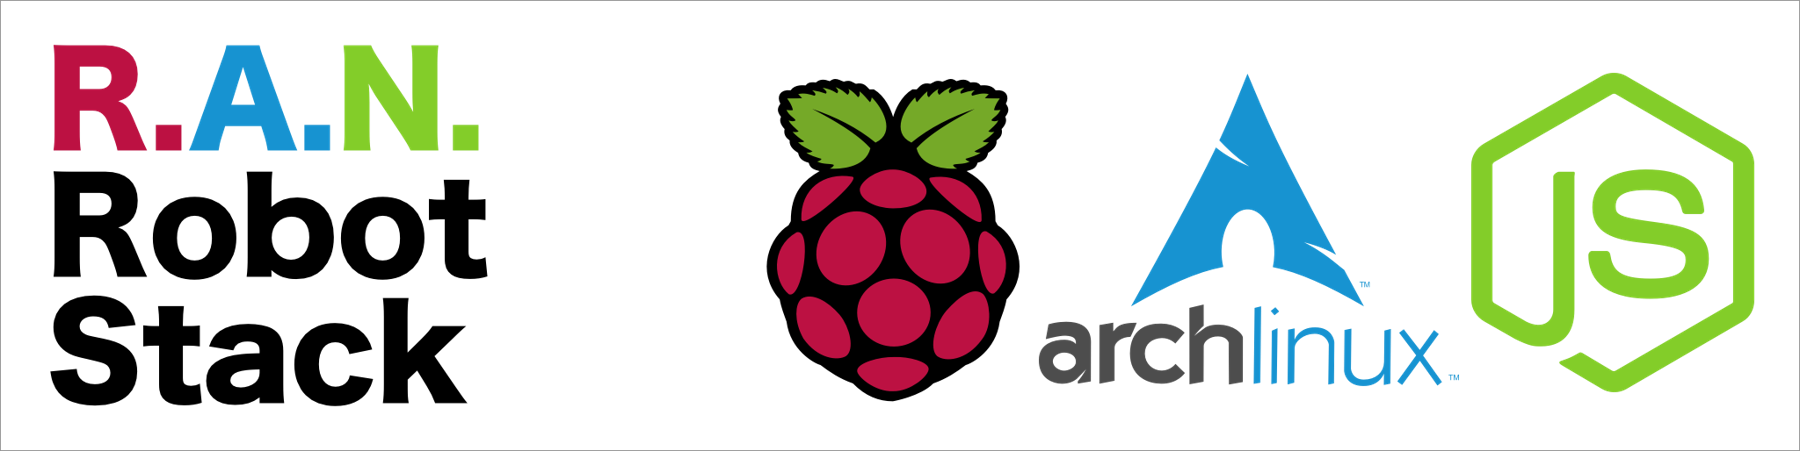 Installing Arch Linux on Raspberry Pi with Immediate WiFi Access